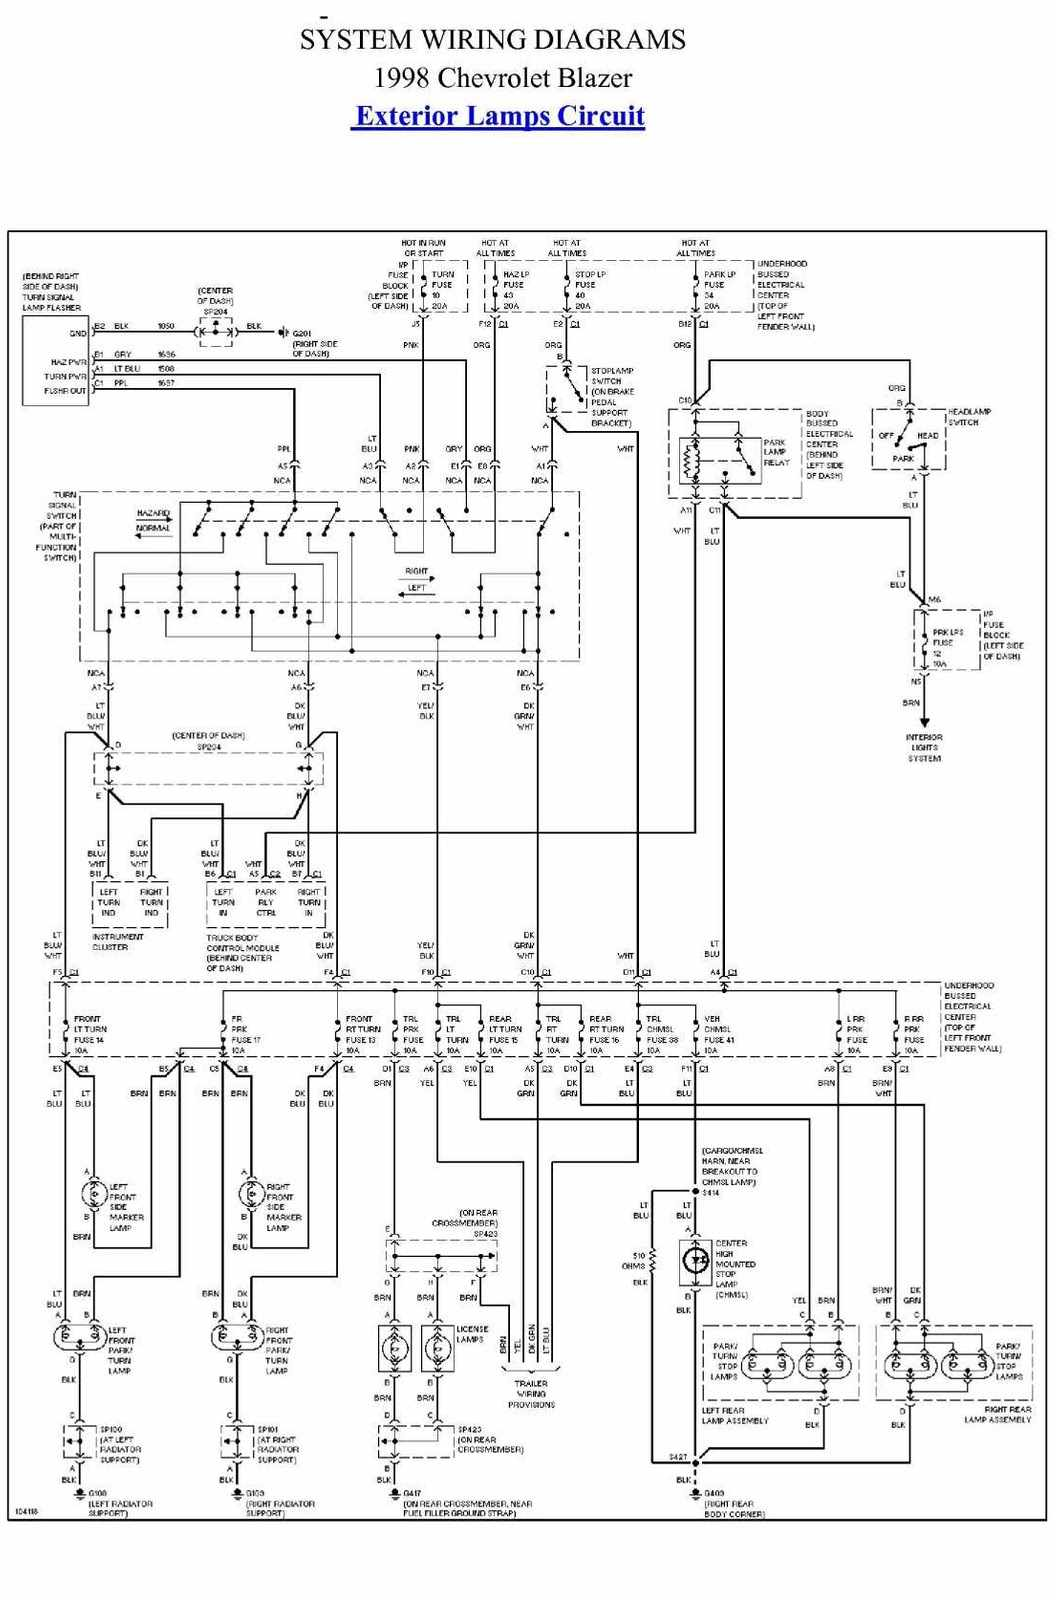 relay electrical schematic with Exterior L  Circuit Diagram Of 1998 on GR24VDCOCTDPDT together with Contactors likewise Mack additionally Freezer and cooling pump interlock control circuit together with 527396 Lx470 Electrical Wiring Diagram.